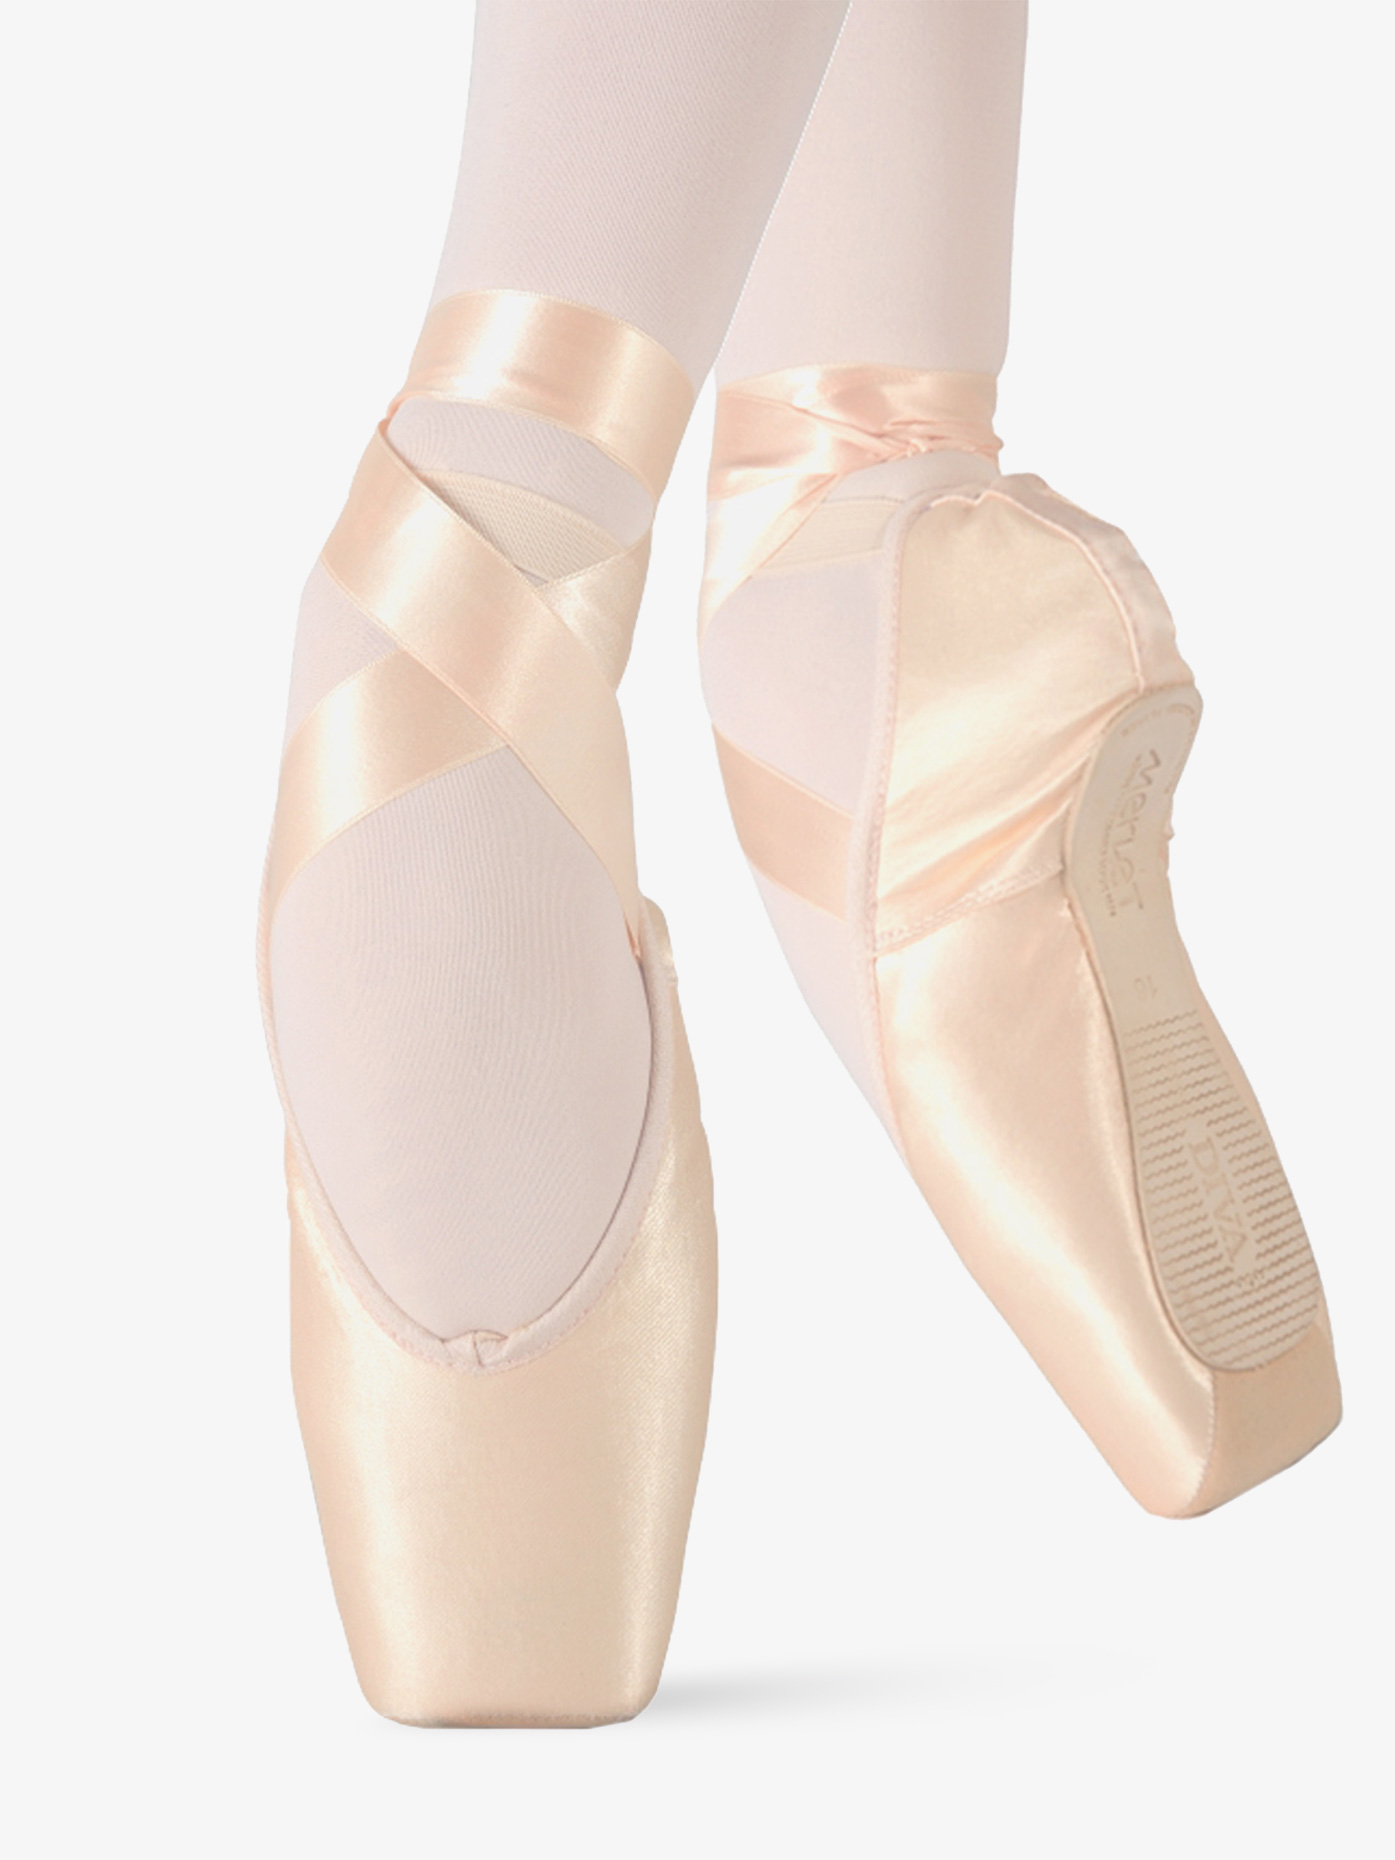 Merlet Womens Diva Suede Tip Pointe Shoes DIVA